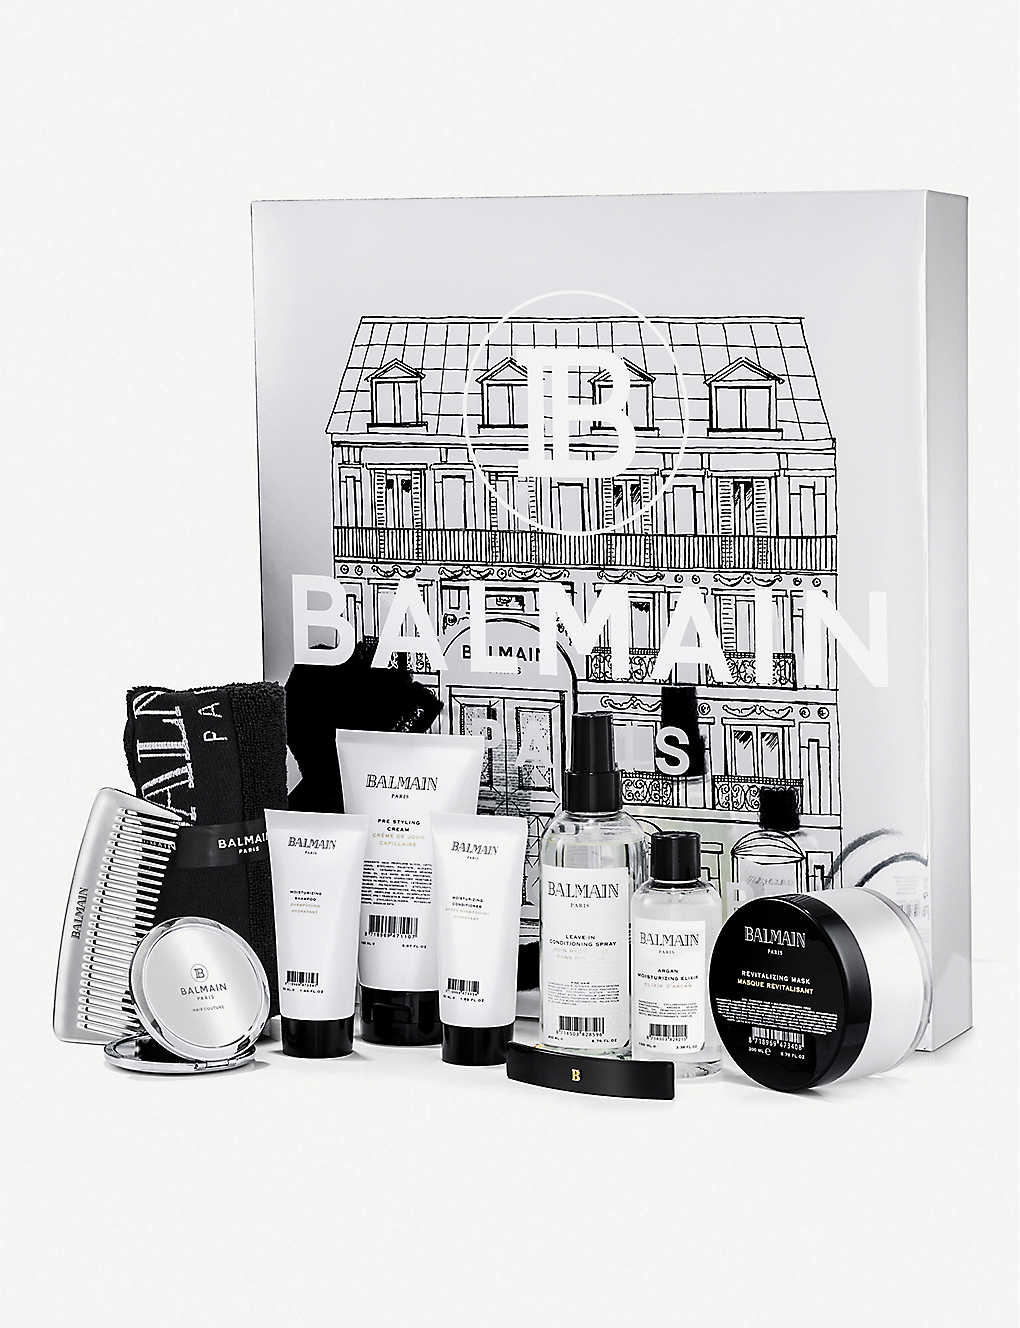 BALMAIN: Limited Edition 10 Days of Balmain Paris Hair Couture Advent Calendar 2019